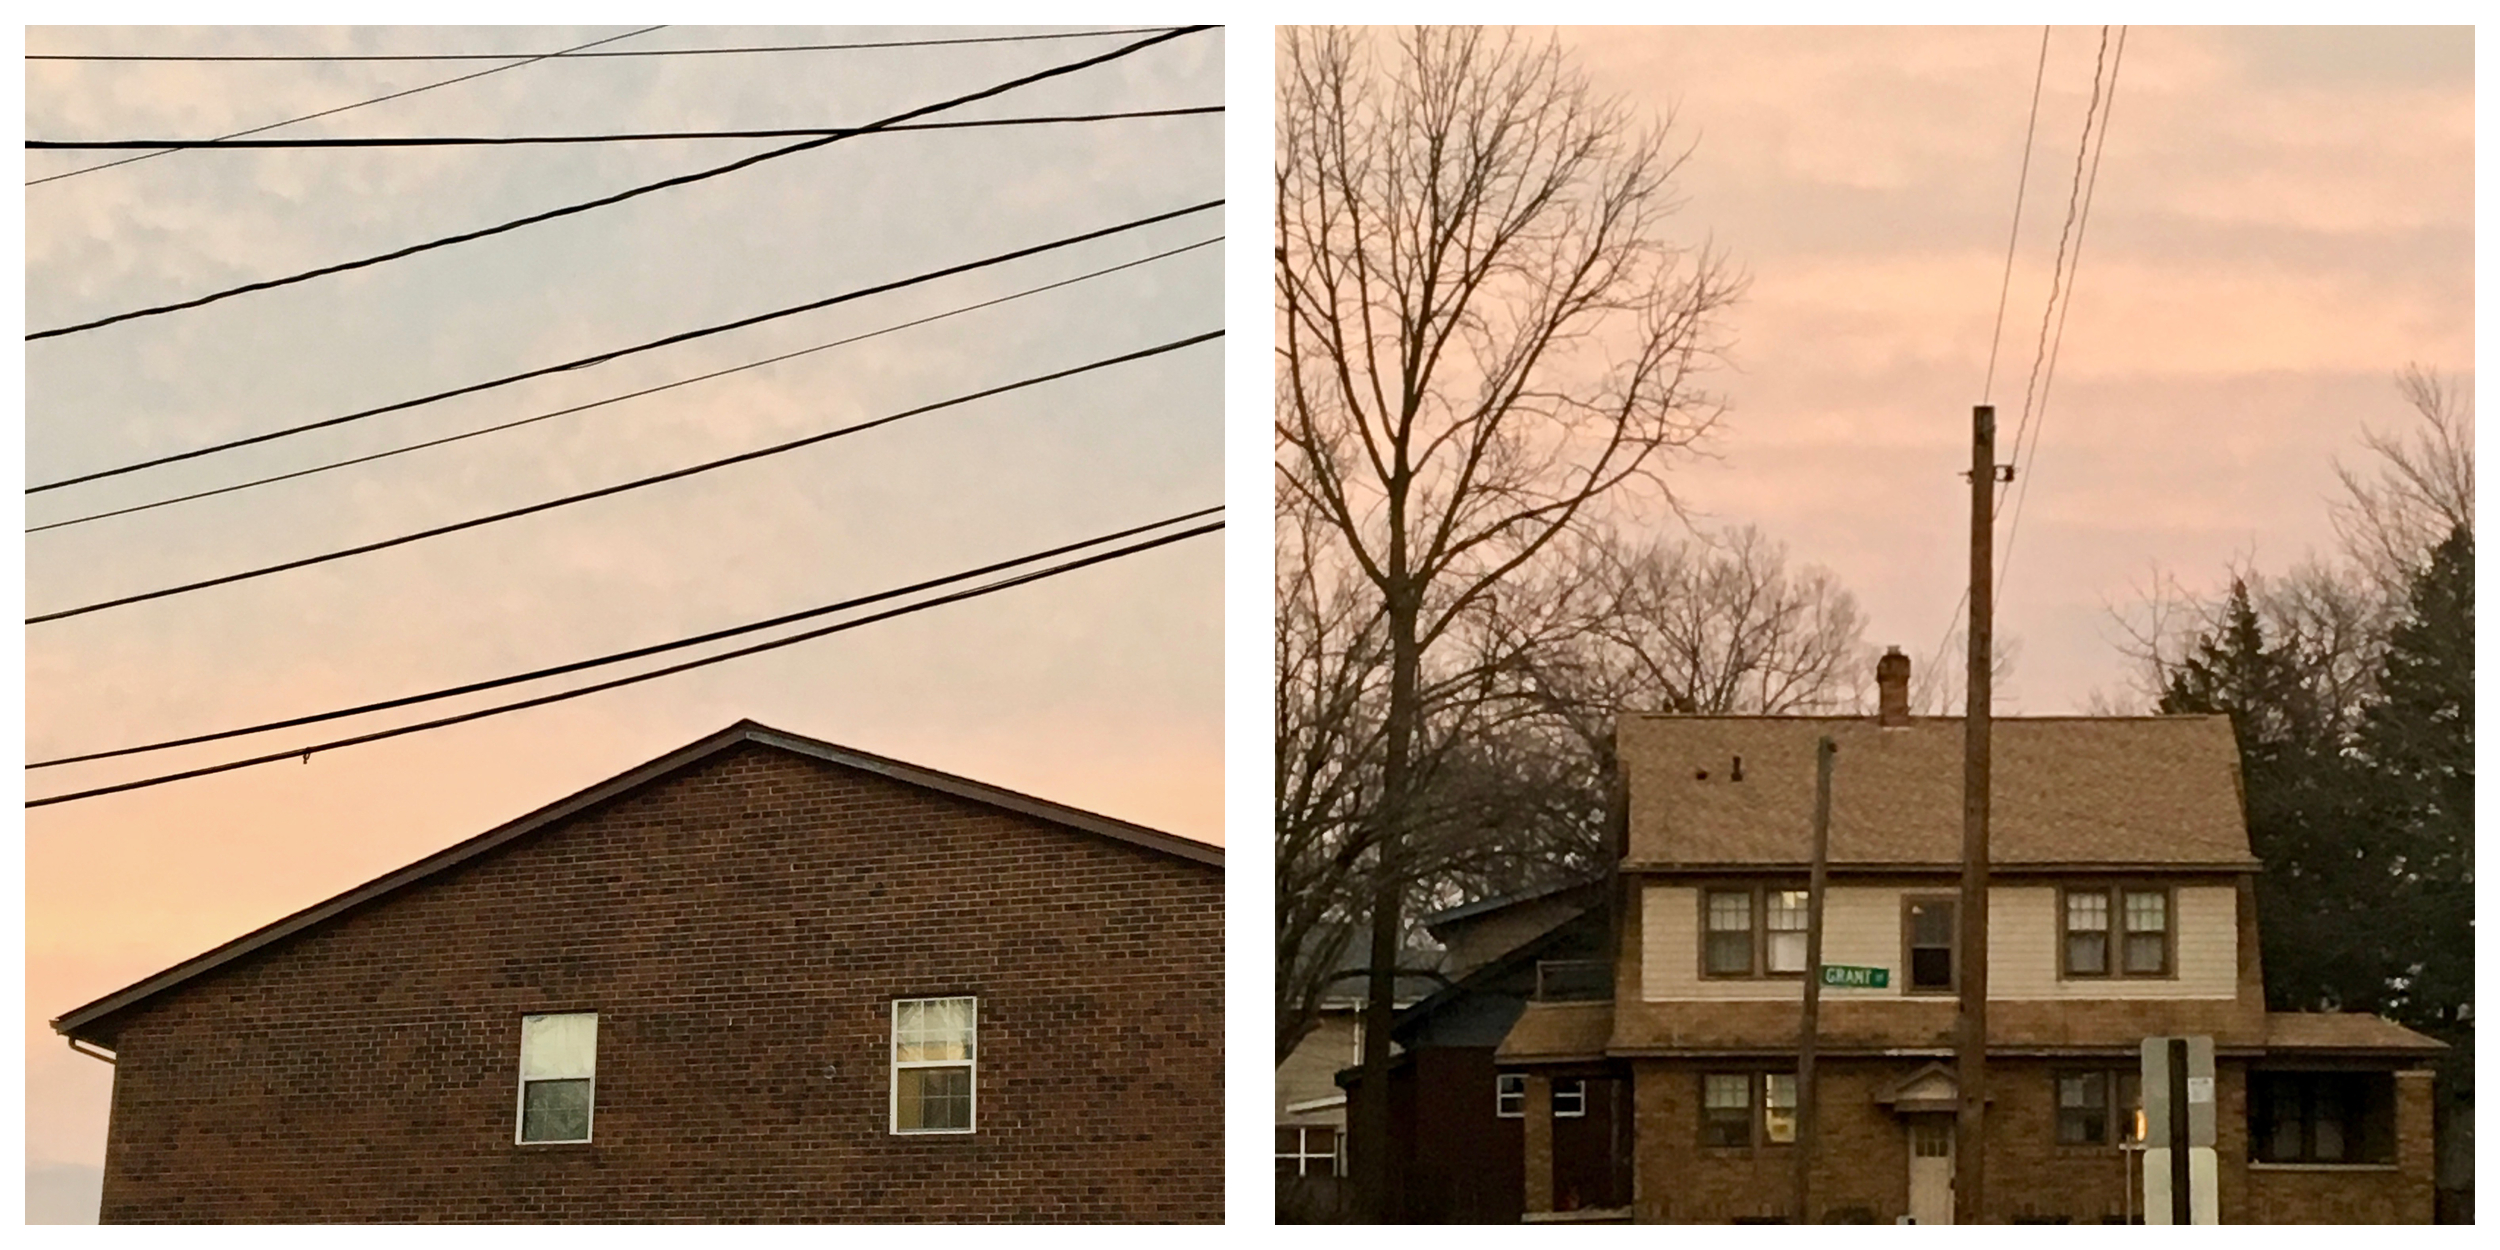 Houses near the campus in the evening